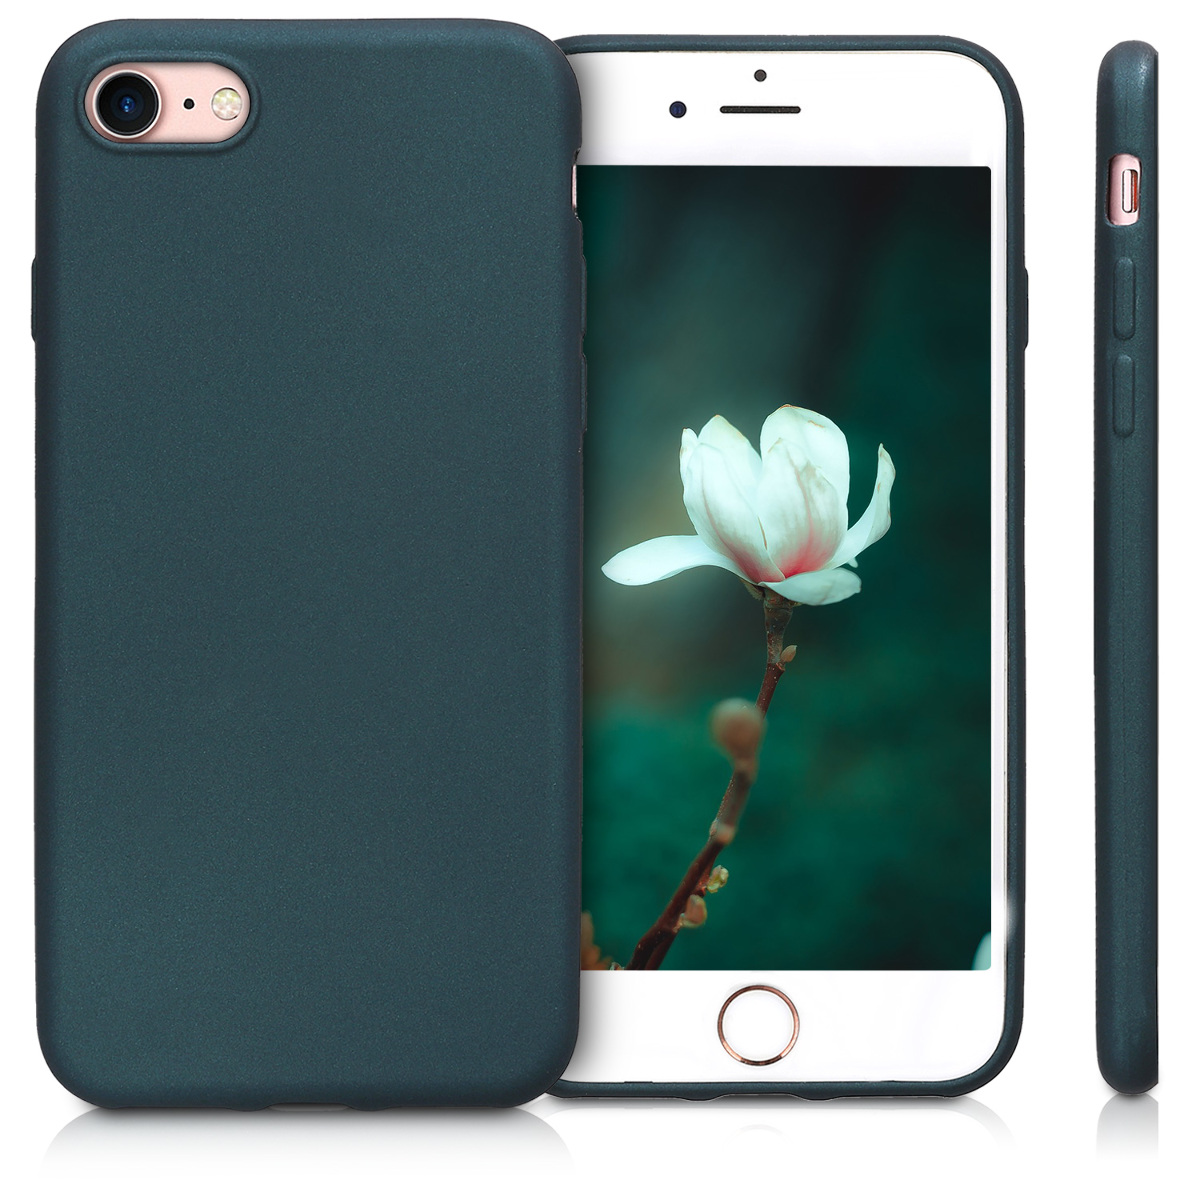 h lle f r apple iphone 7 8 handyh lle handy case cover smartphone backcover ebay. Black Bedroom Furniture Sets. Home Design Ideas